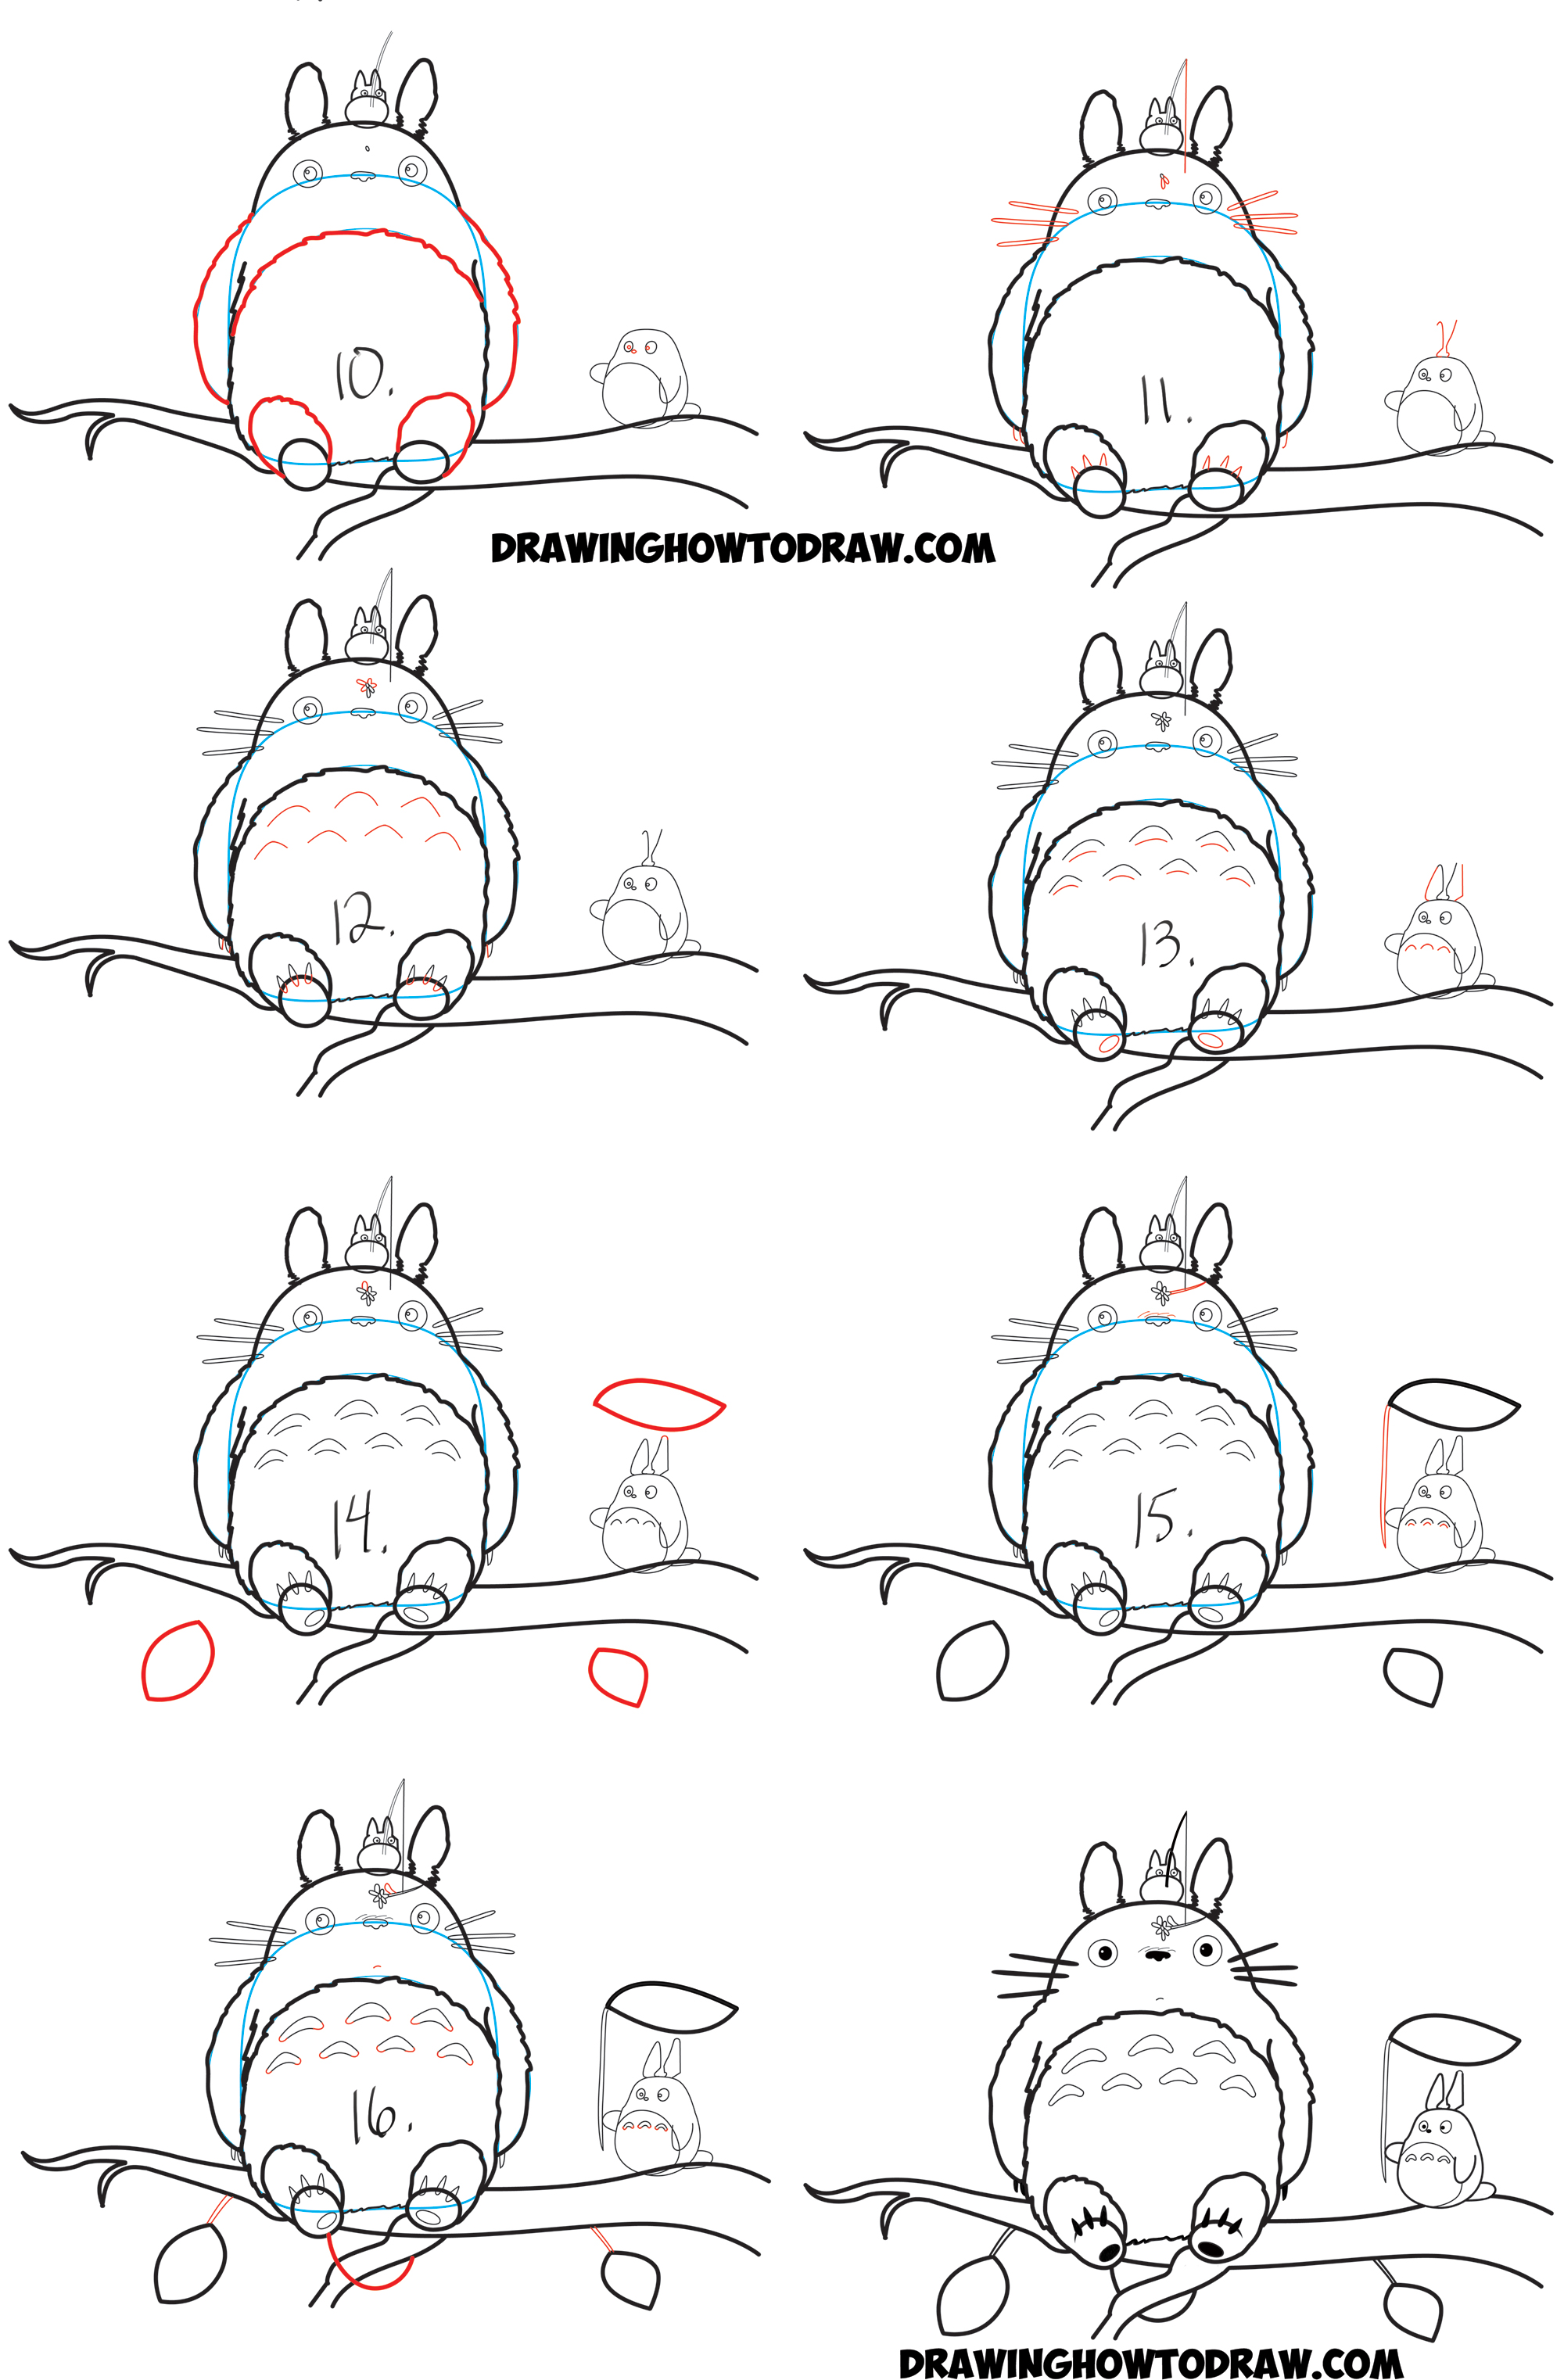 Small Drawings: How To Draw Totoro From My Neighbor Totoro